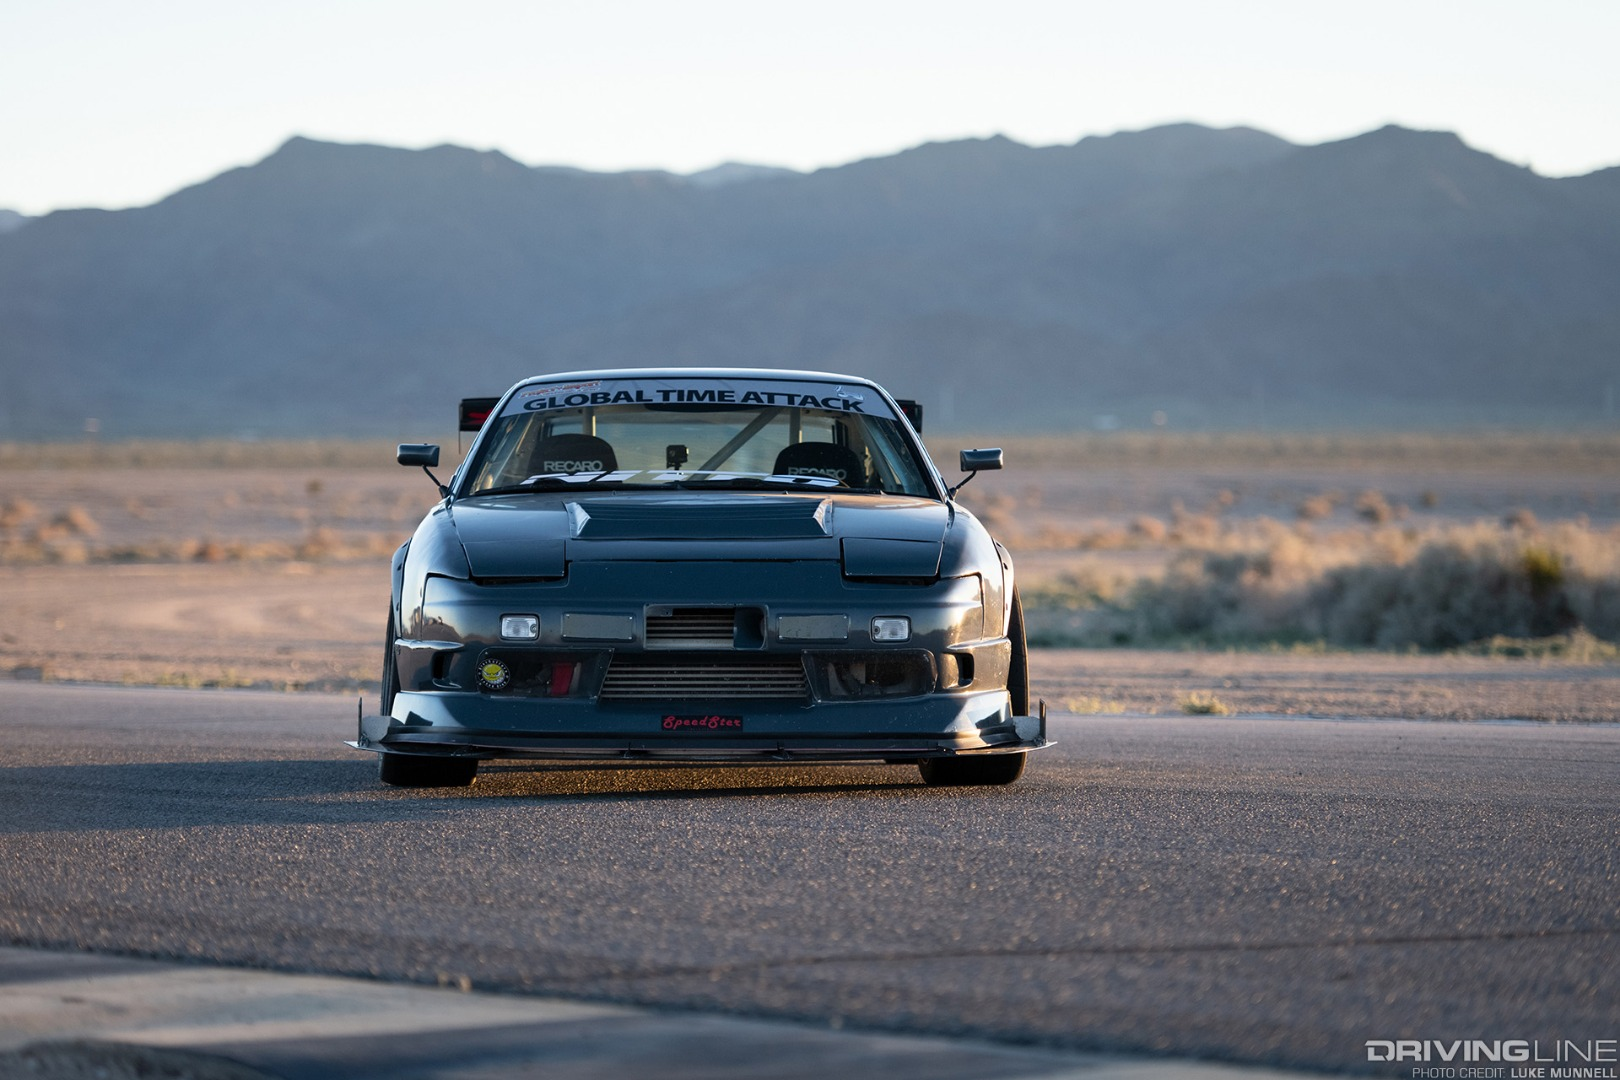 Ride Of The Week Time Attack 1989 Nissan 240sx Drivingline